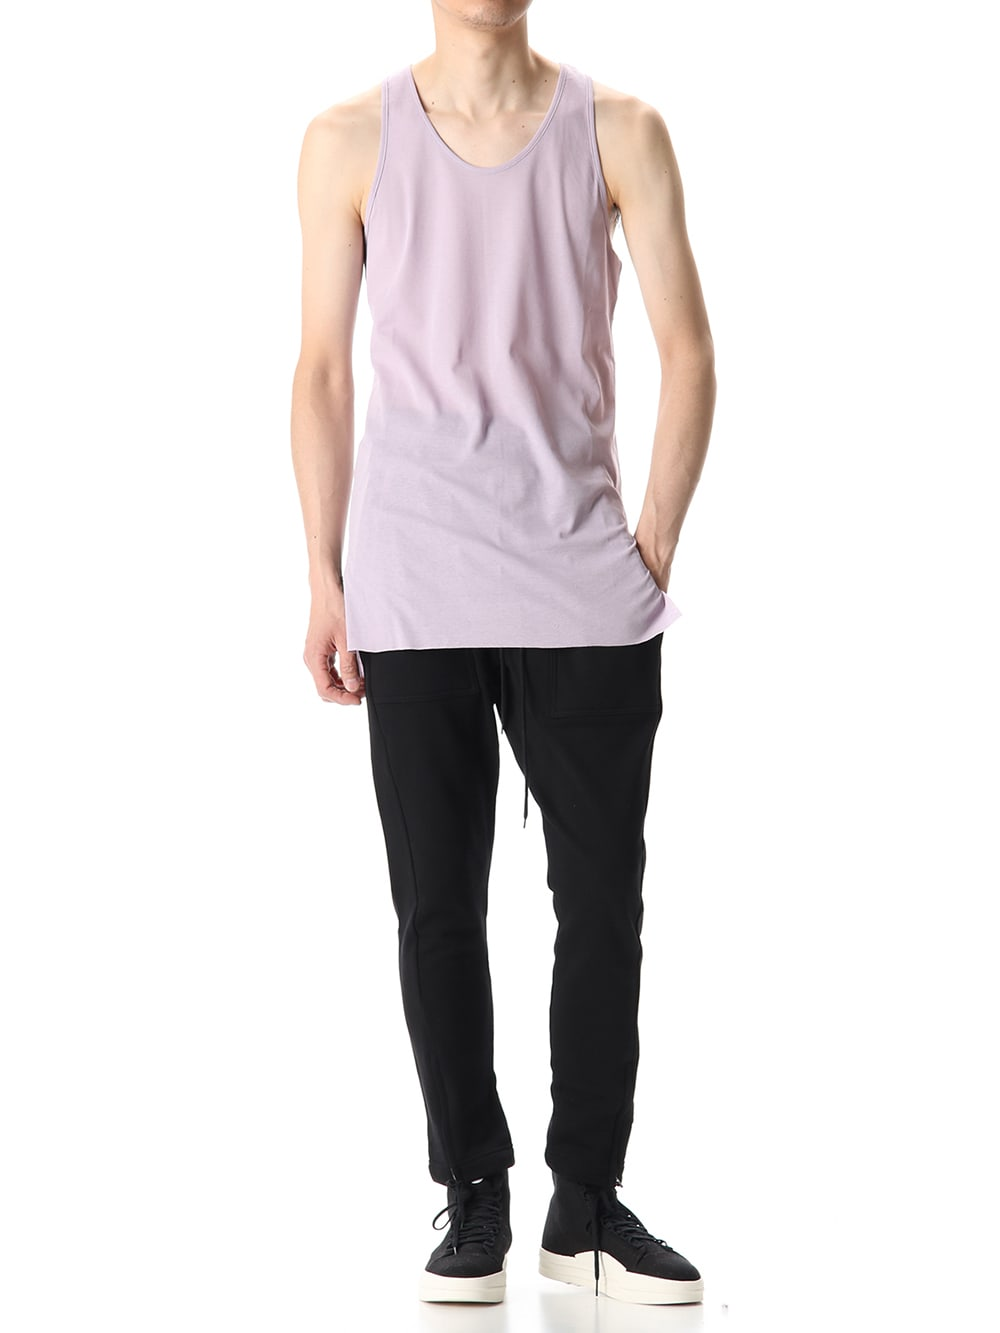 DIET BUTCHER SLIM SKIN 20SS Collection 3rd Delivery!! - 1-012